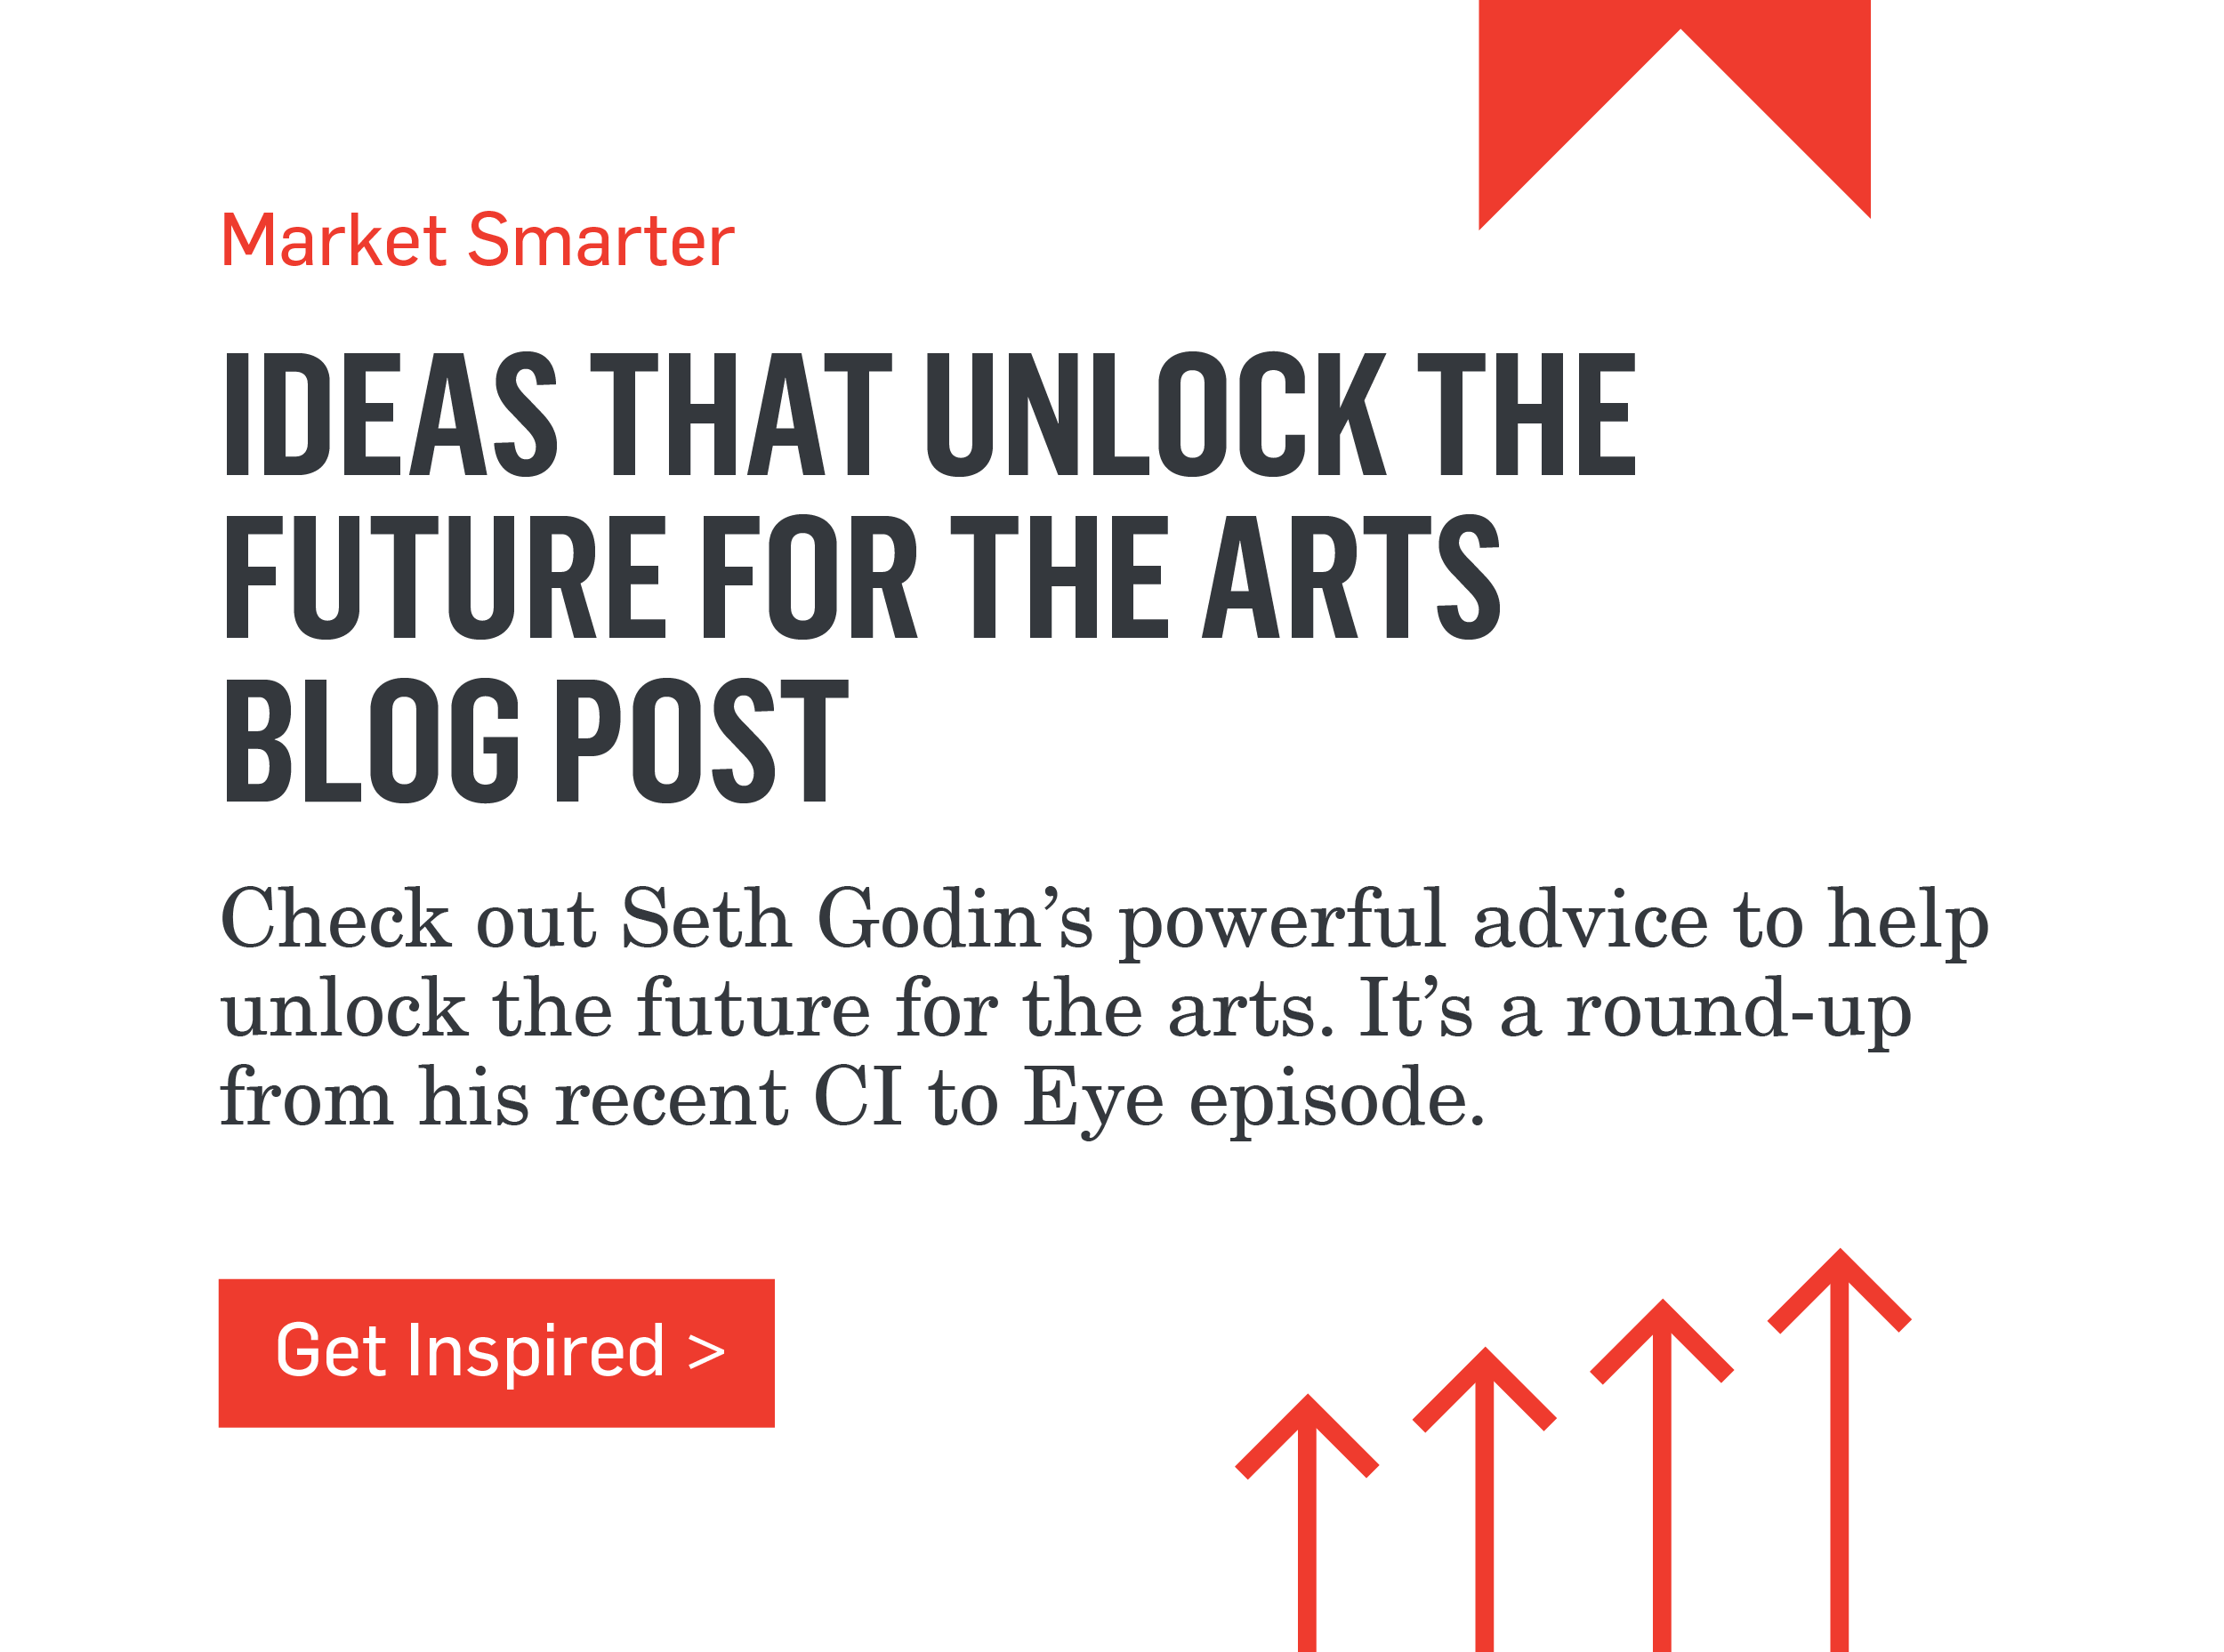 Market Smarter - IDEAS THAT UNLOCK THE FUTURE FOR THE ARTS BLOG POST - Check out Seth Godin's powerful advice to help unlock the future for the arts. It's a round-up from his recent CI to Eye episode. >>>Get Inspired>>>